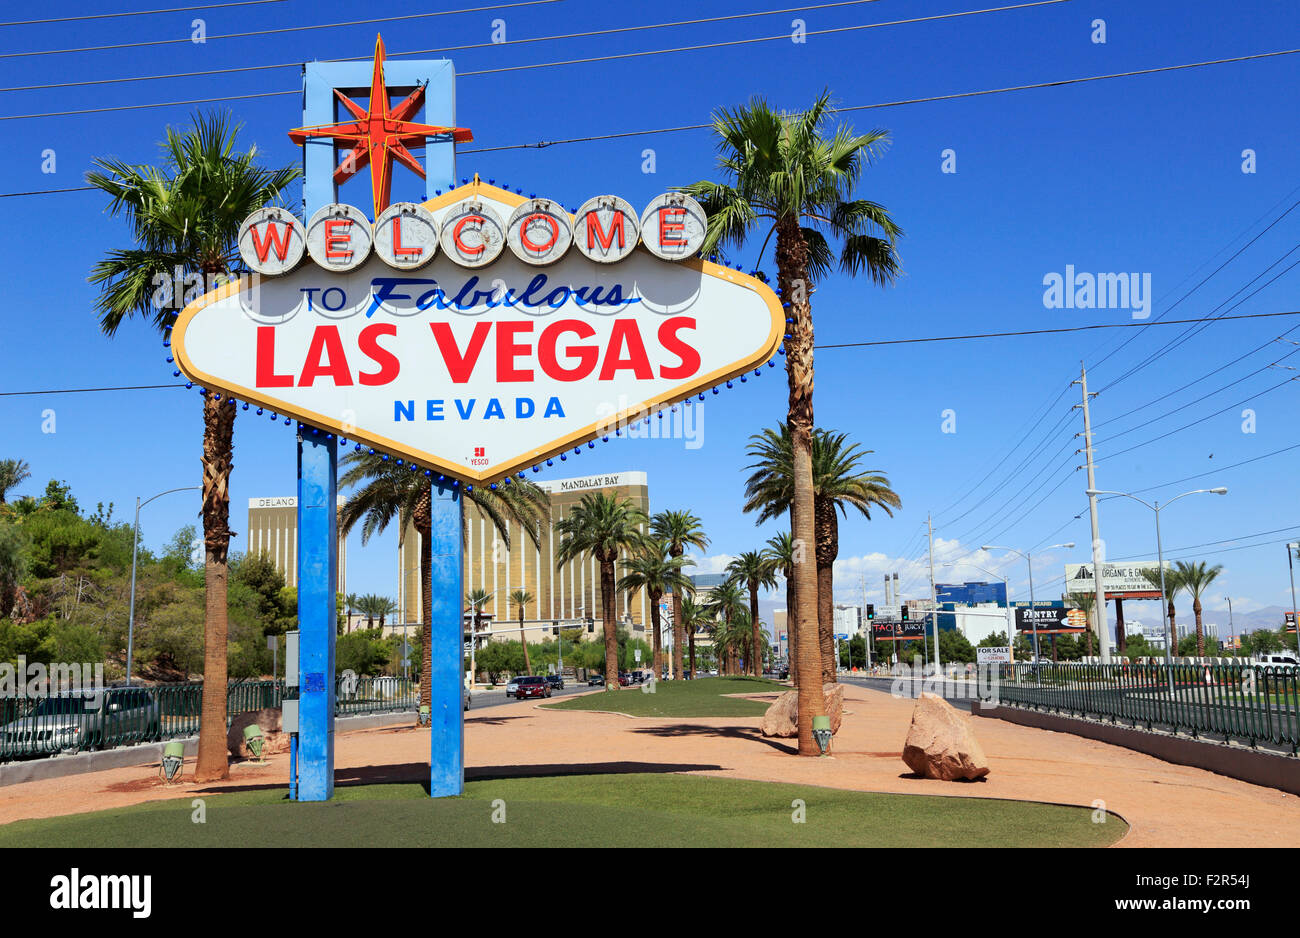 welcome-to-fabulous-las-vegas-sign-nevada-F2R54J.jpg